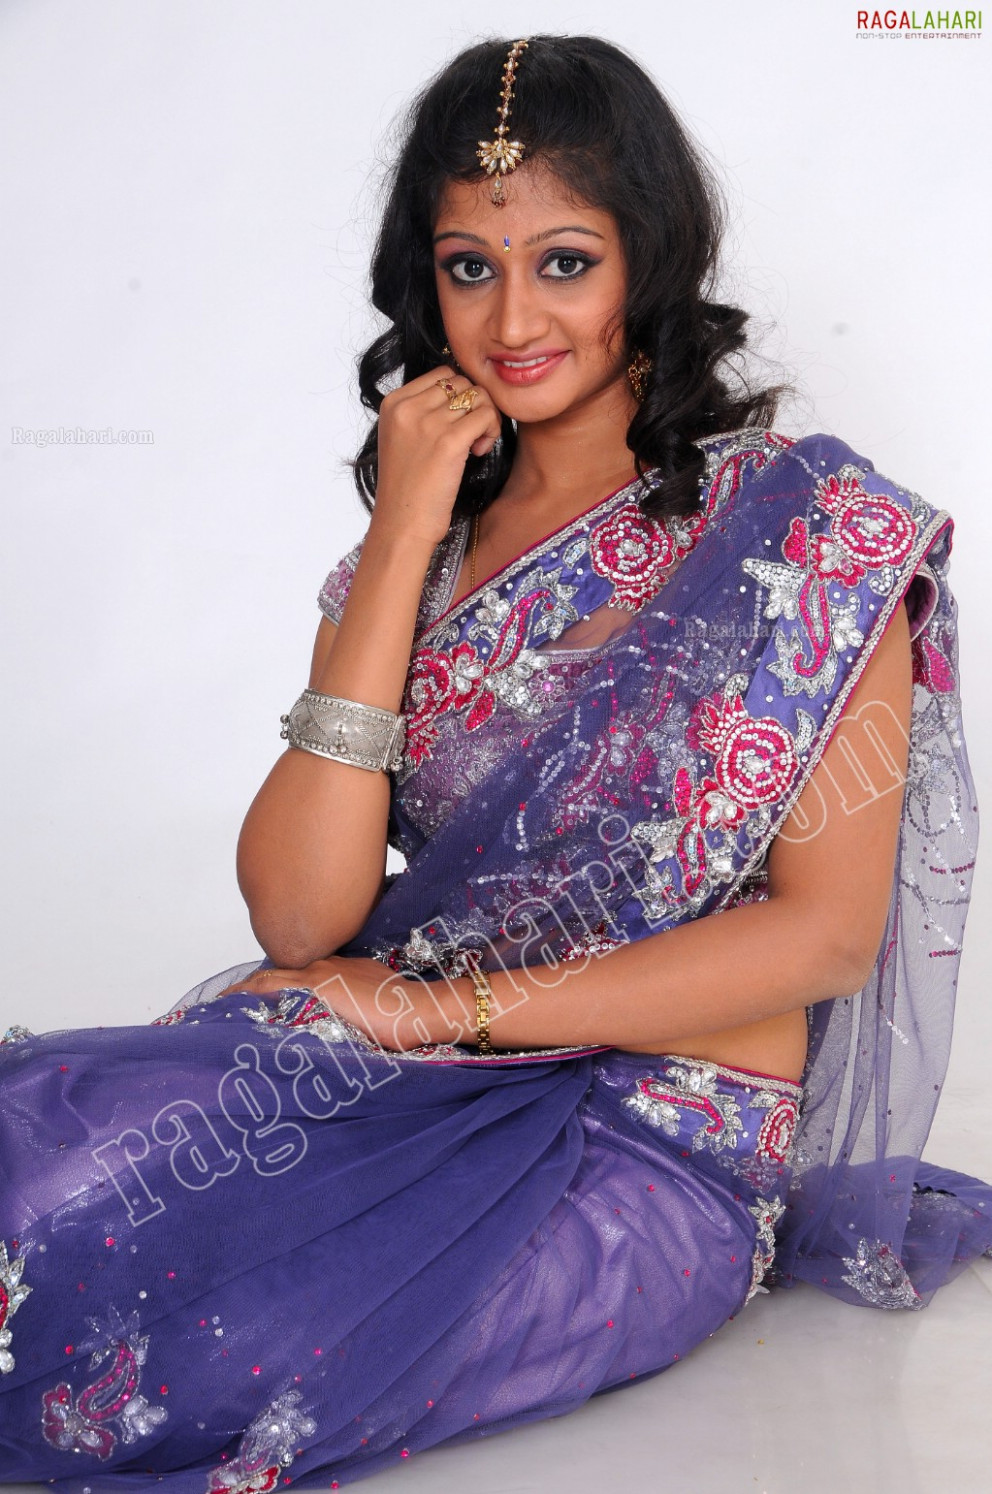 Saree Navel Pics Ragalahari « Actress Gossip